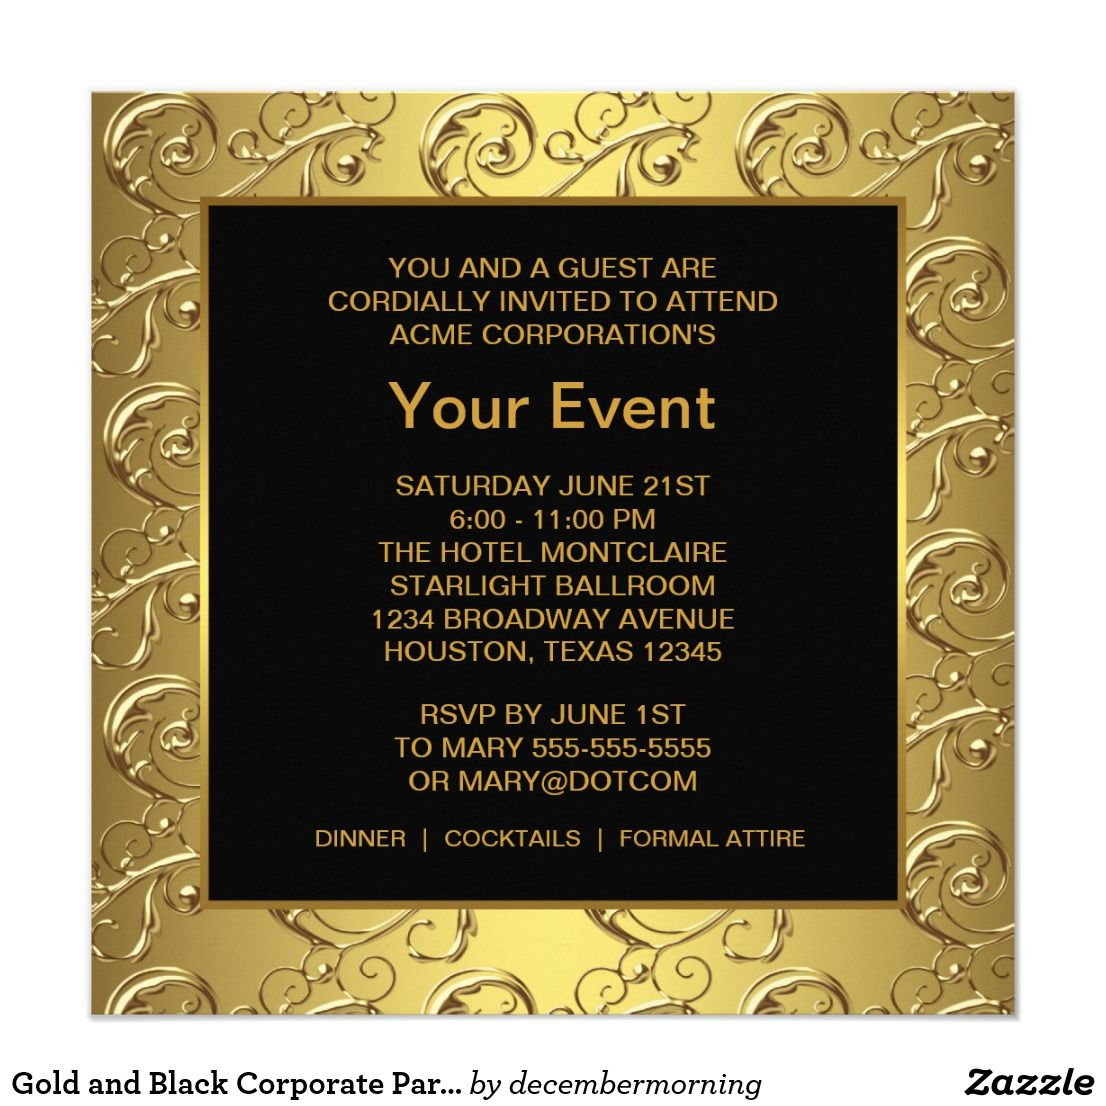 Gold And Black Corporate Party Event Invitation Zazzle Com